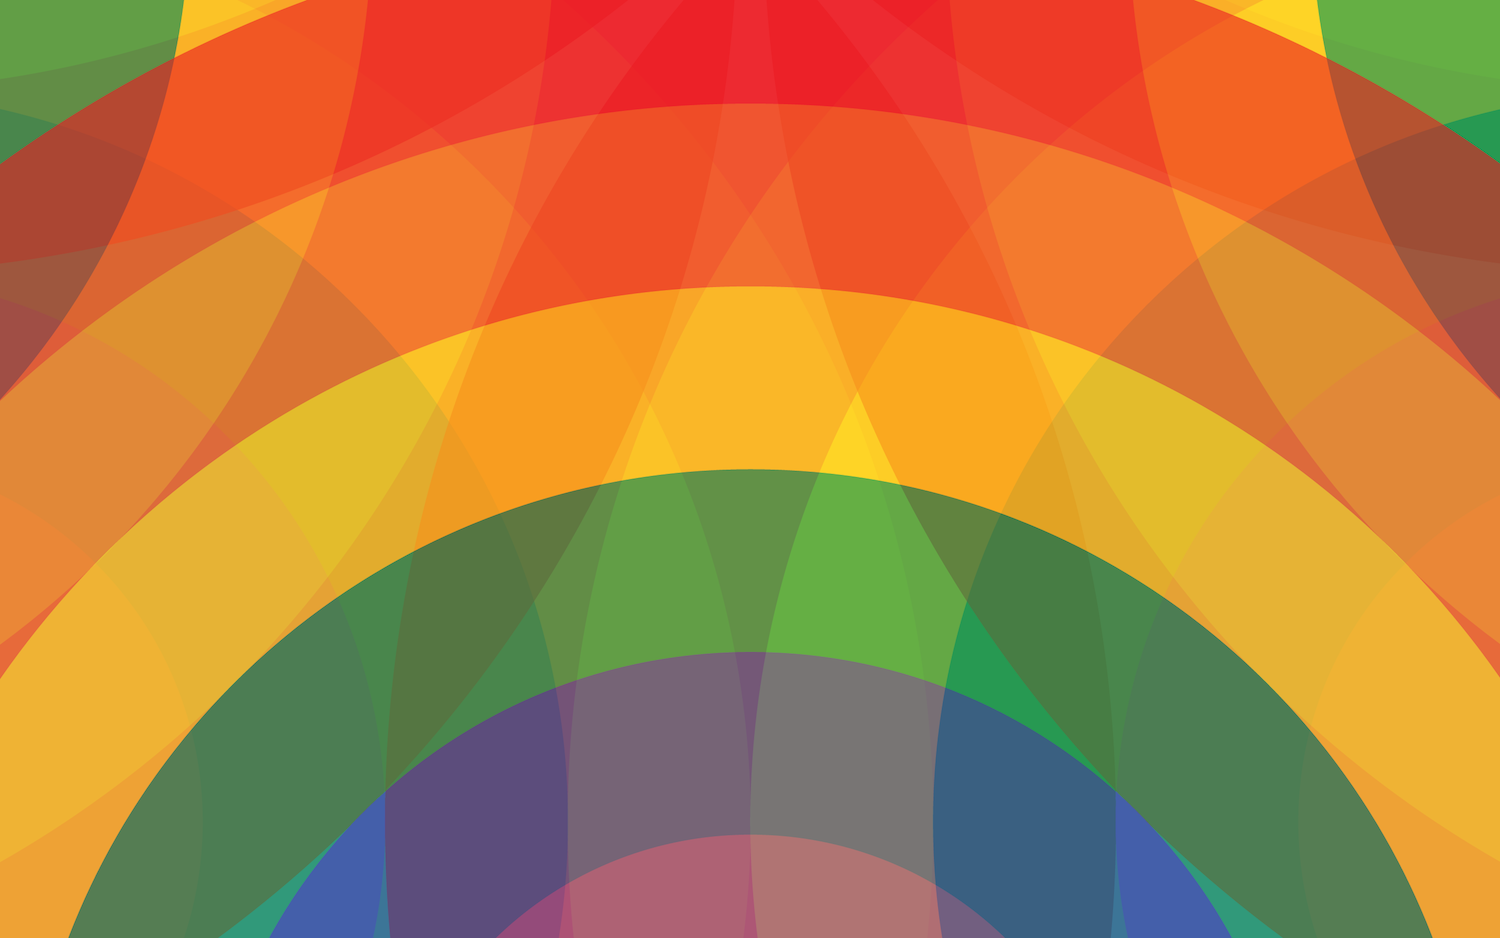 RainbowTiles-Wallpaper copy